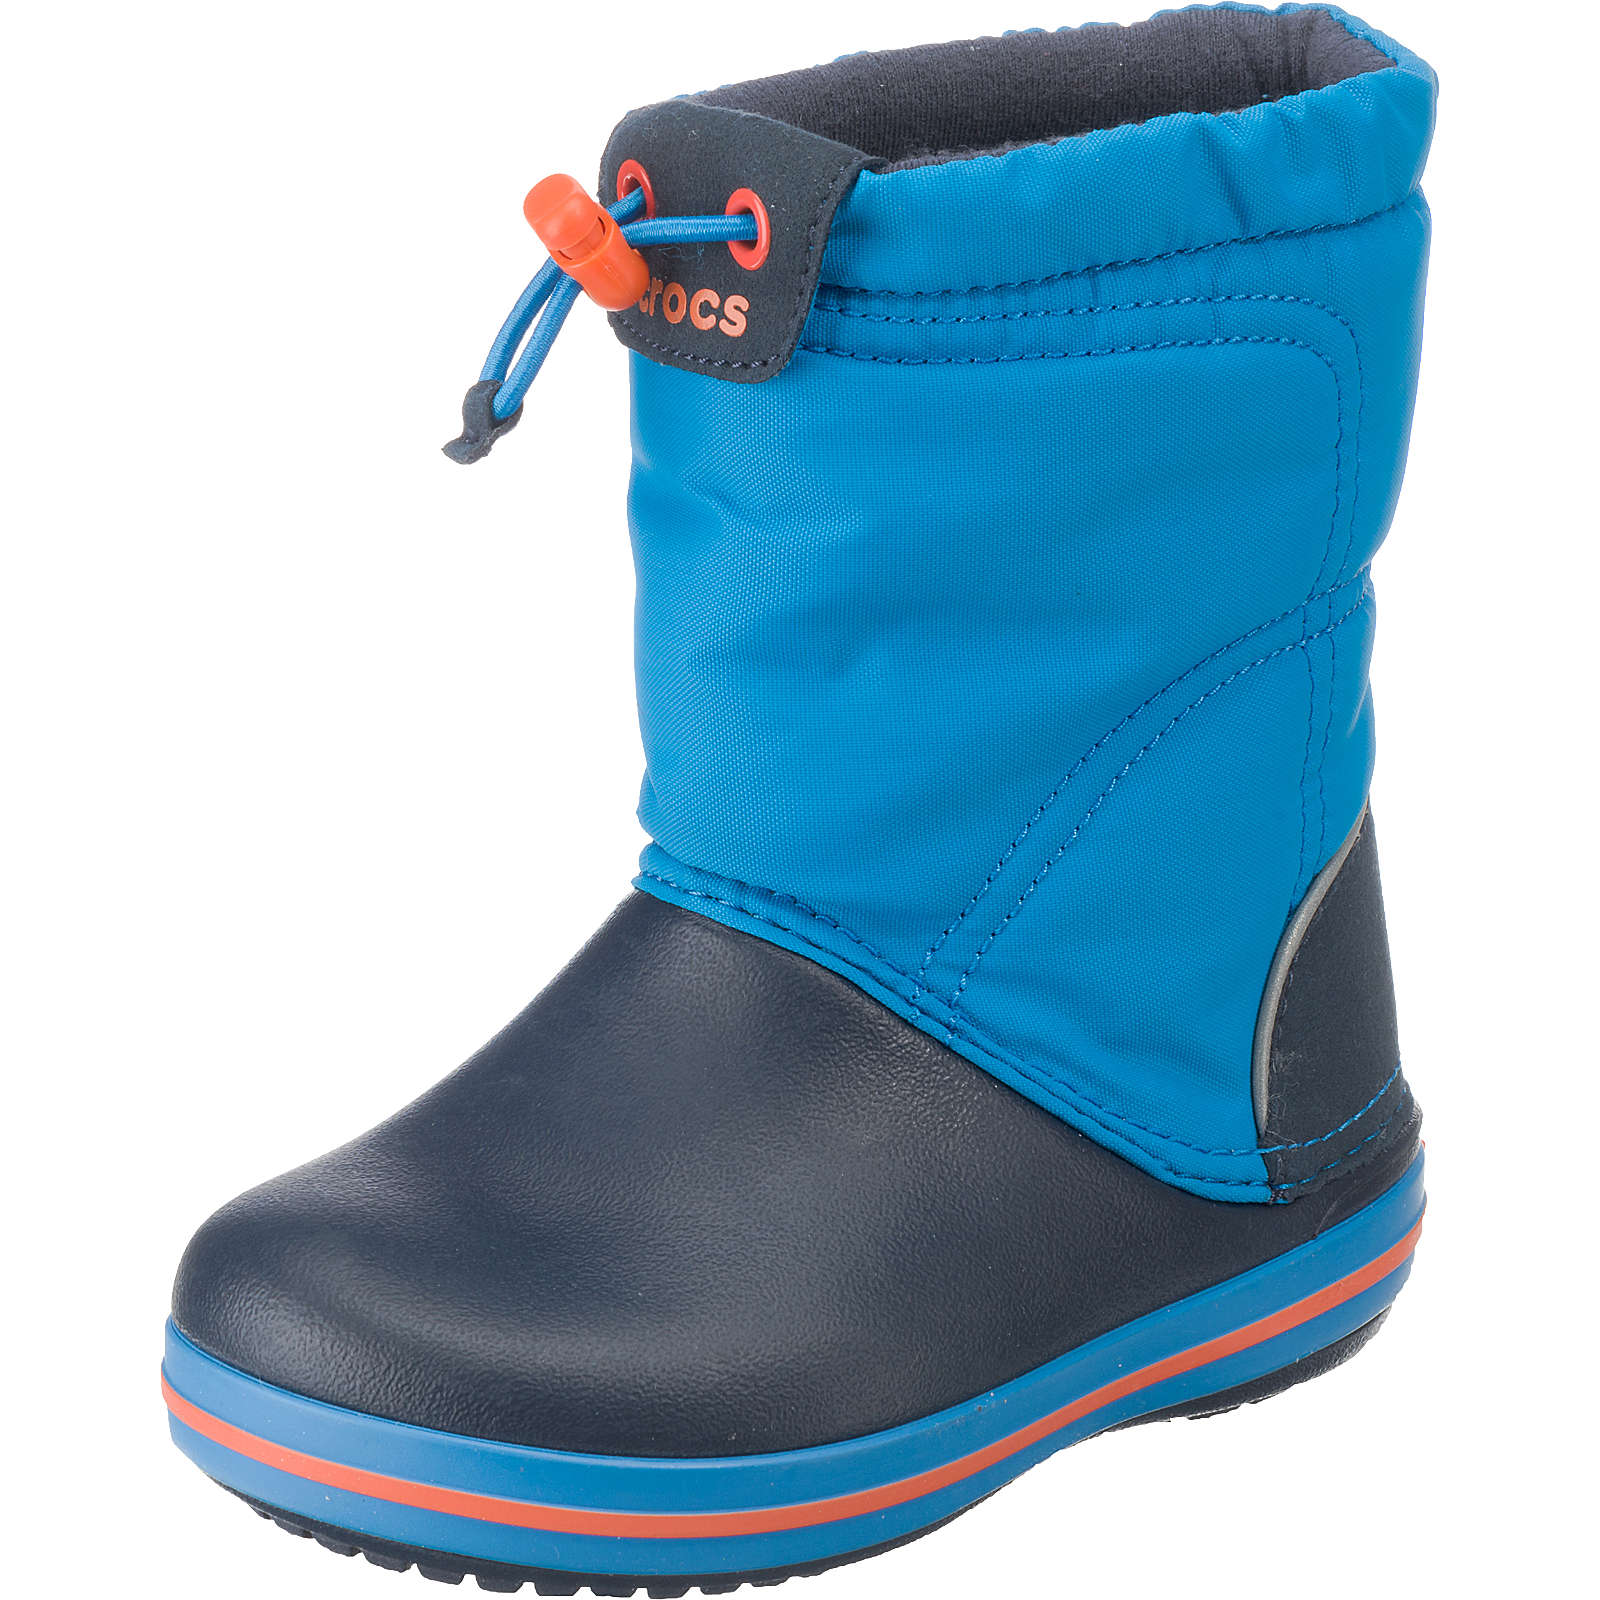 crocs kinder winterstiefel crocband lodgepoint boot blau junge g nstig schnell einkaufen. Black Bedroom Furniture Sets. Home Design Ideas